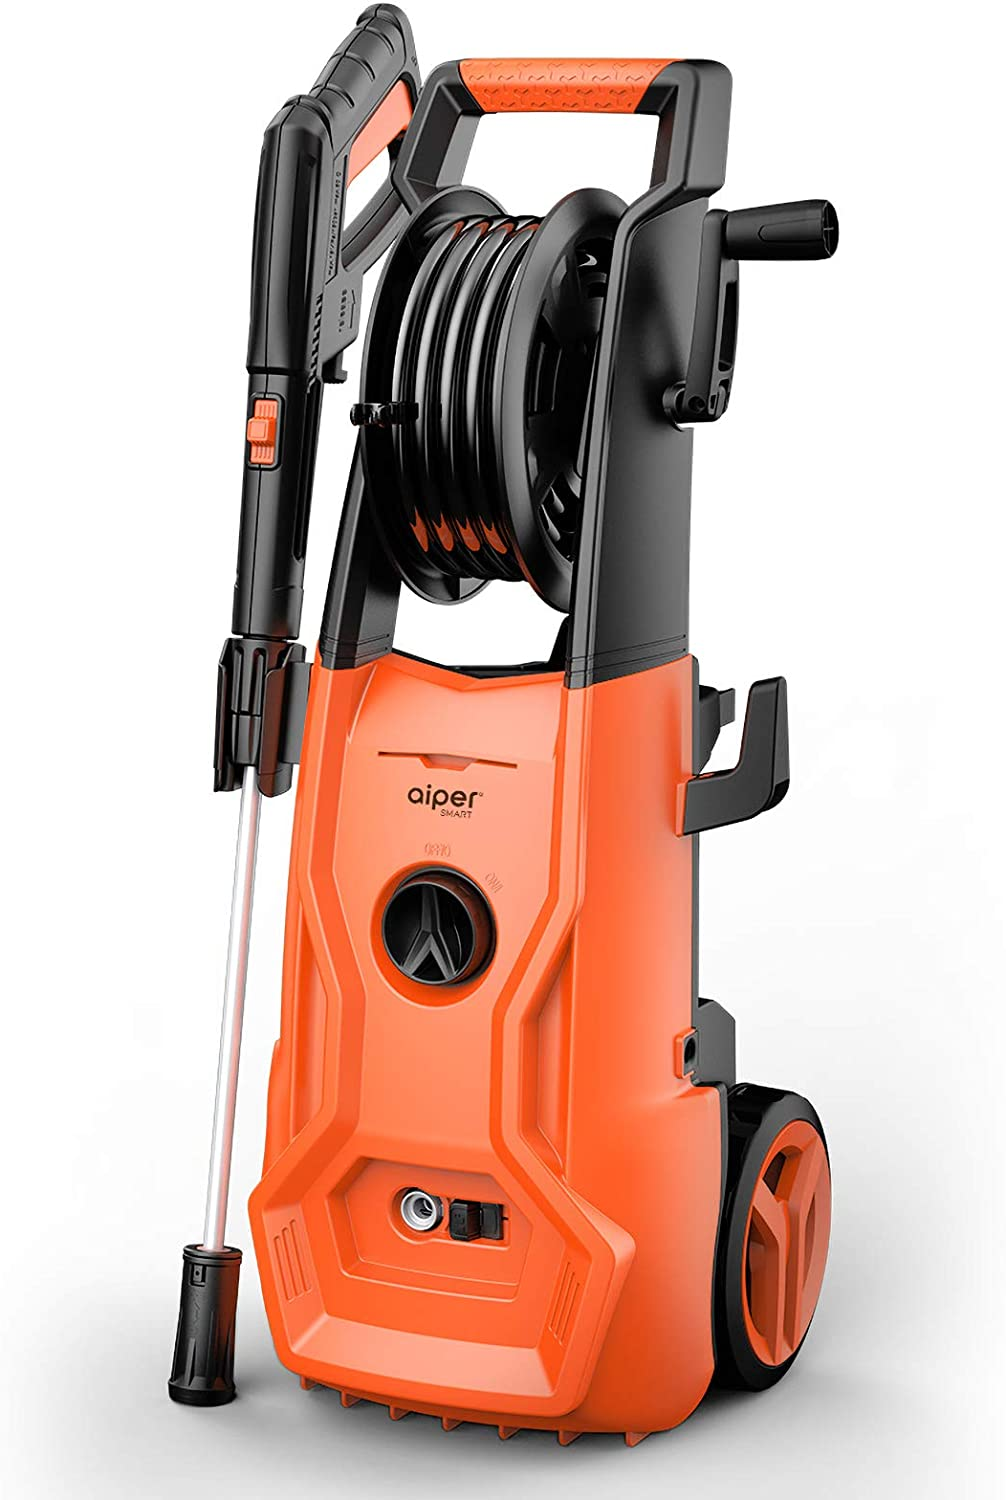 AIPER  2150 PSI 1800W Electric High Pressure Washer $79.82 Coupon